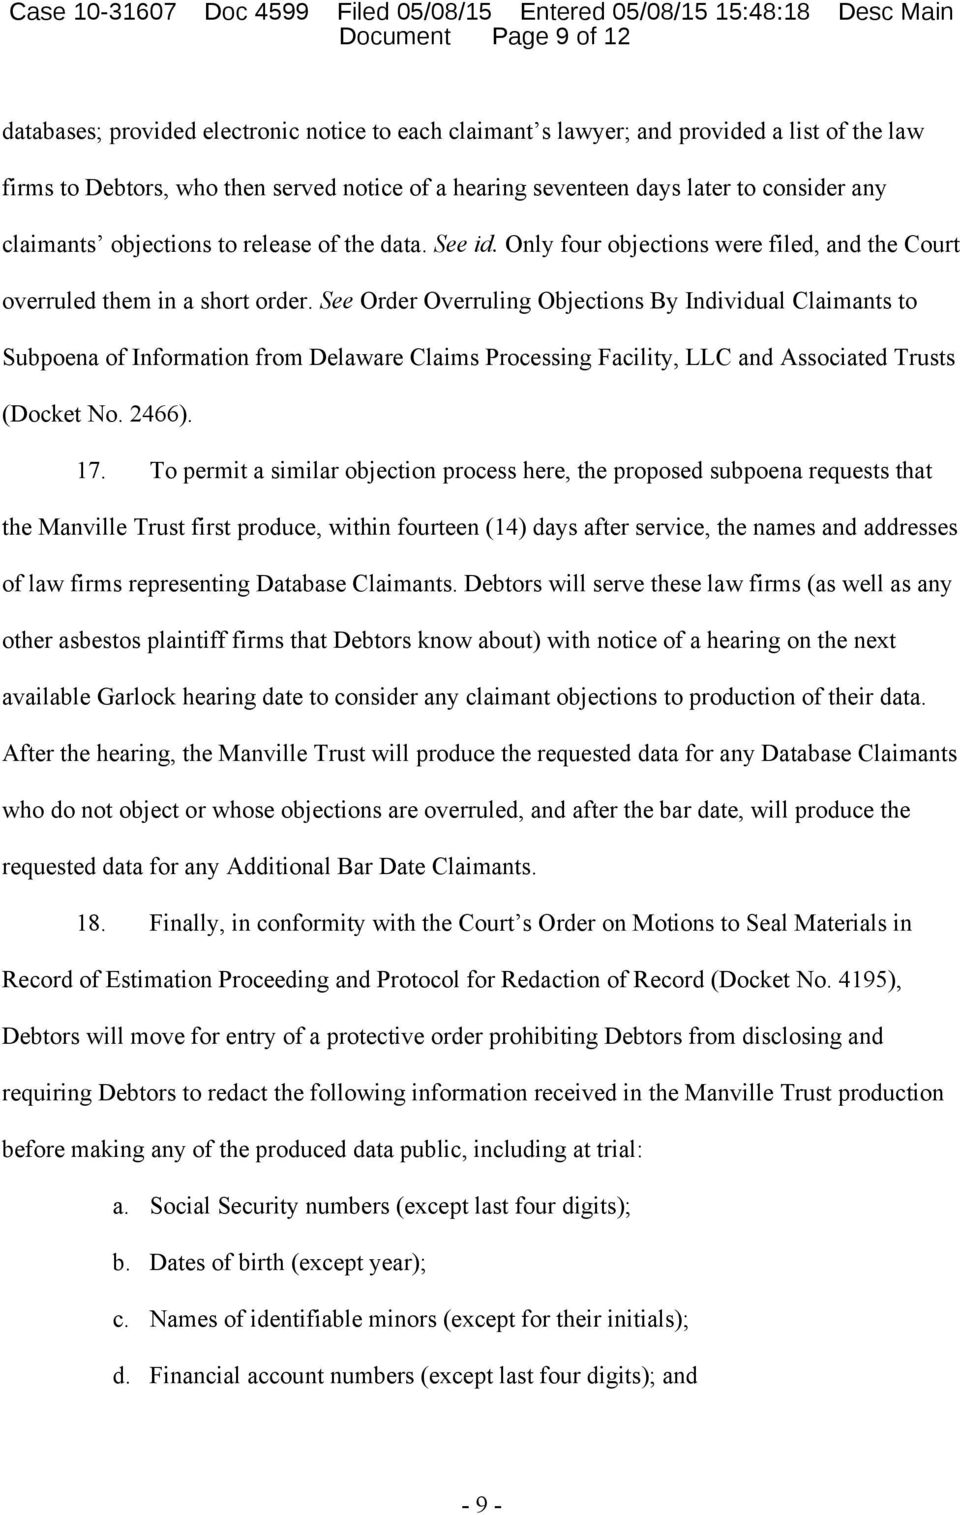 See Order Overruling Objections By Individual Claimants to Subpoena of Information from Delaware Claims Processing Facility, LLC and Associated Trusts (Docket No. 2466). 17.